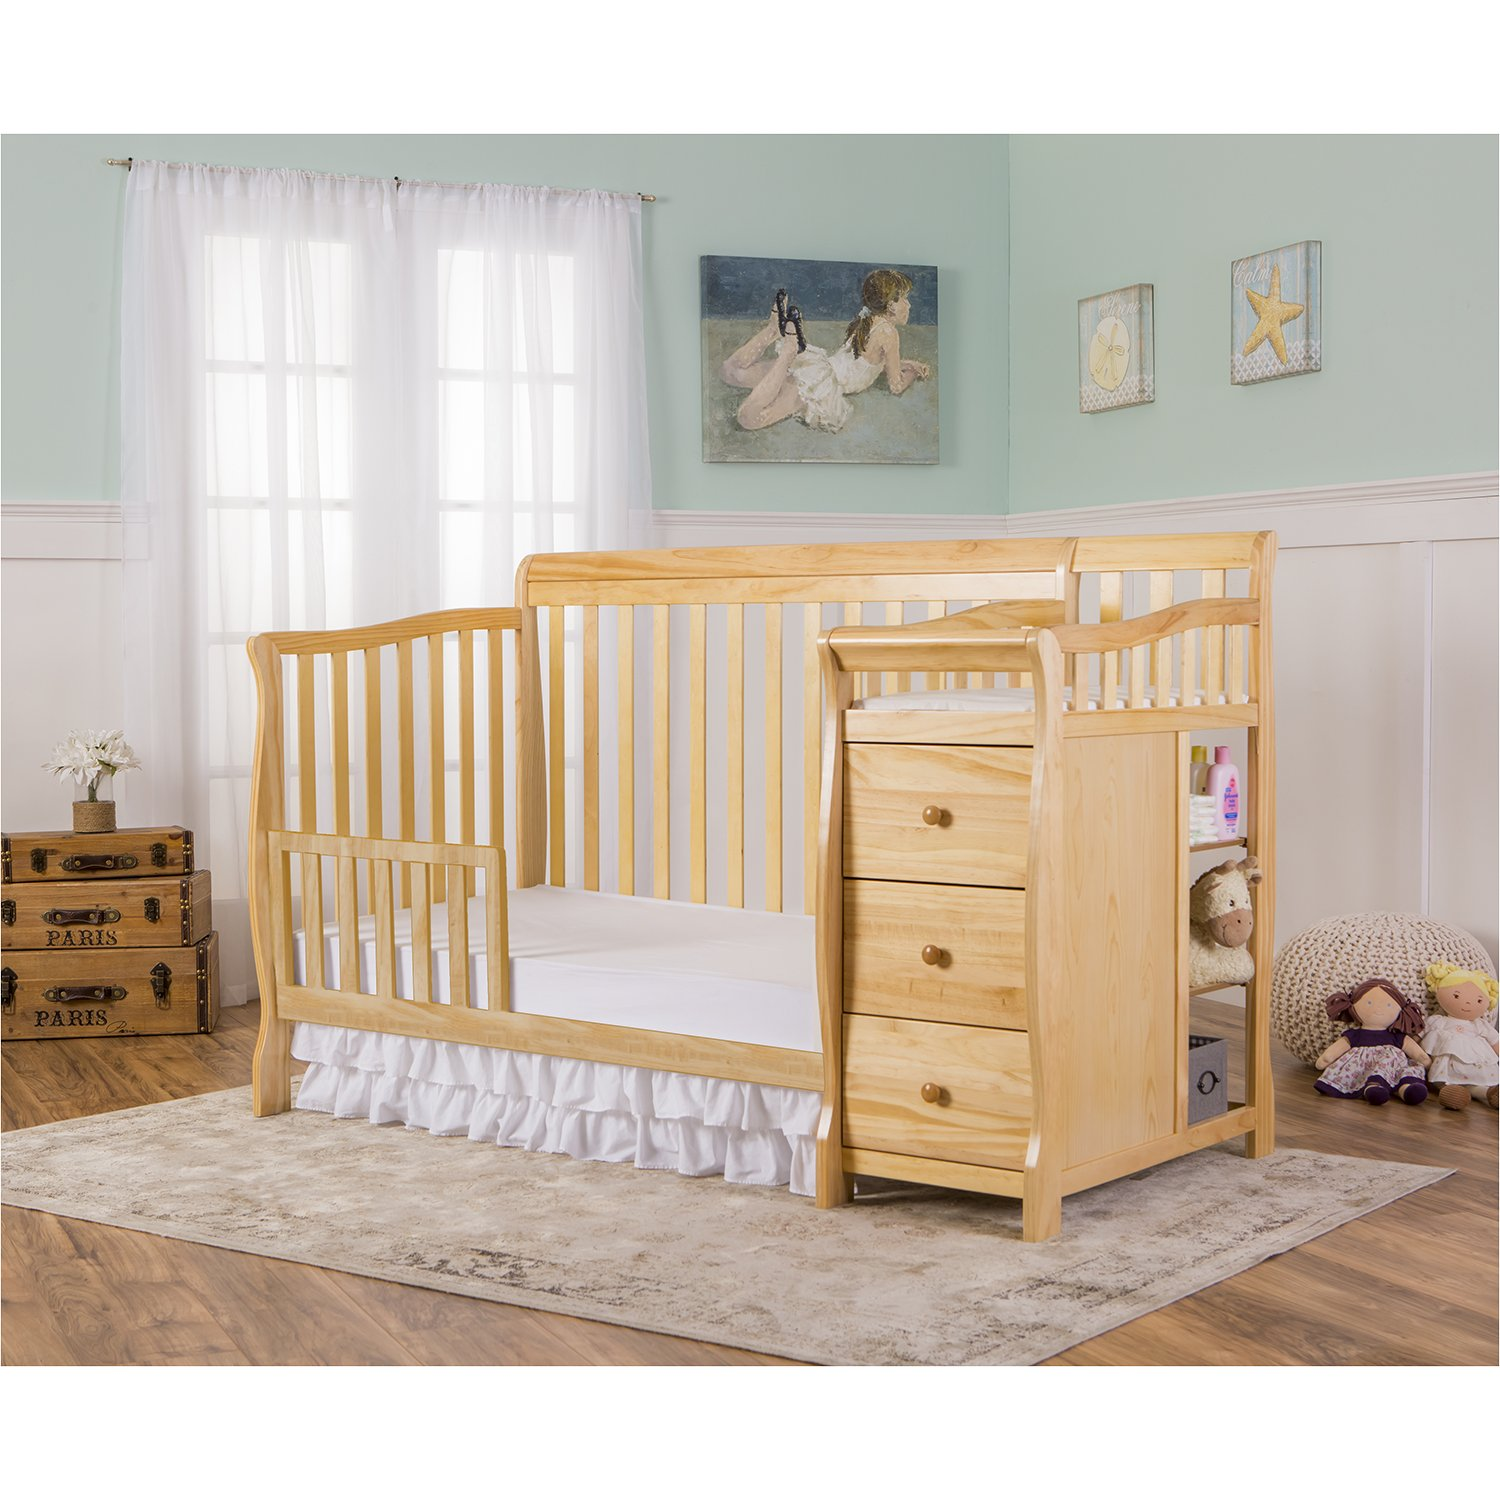 Dream On Me 5 in 1 Brody Convertible Crib with Changer, Natural by Dream On Me (Image #5)